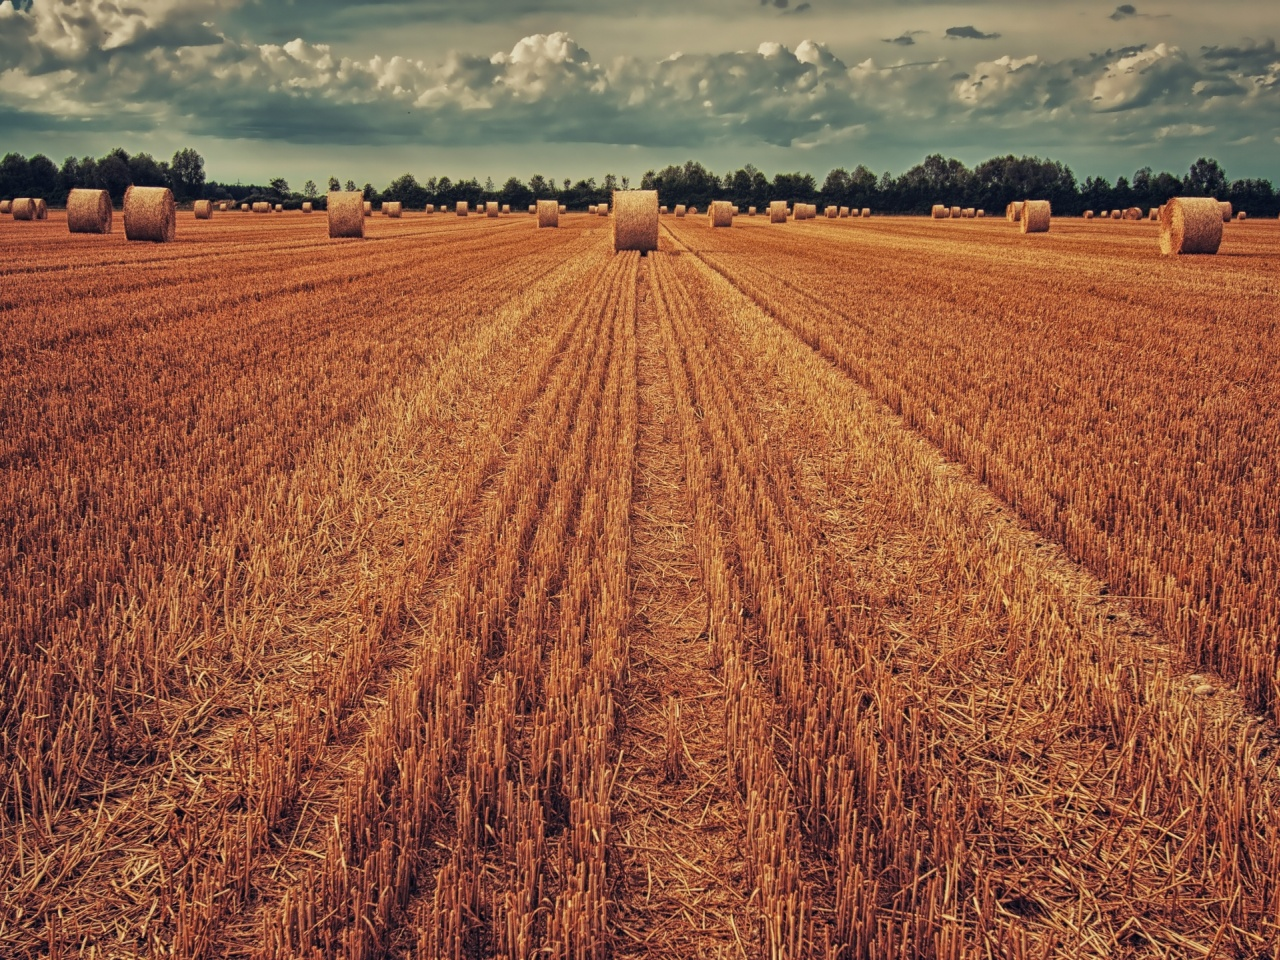 1280x960 field, crop, wheat, hay, grass